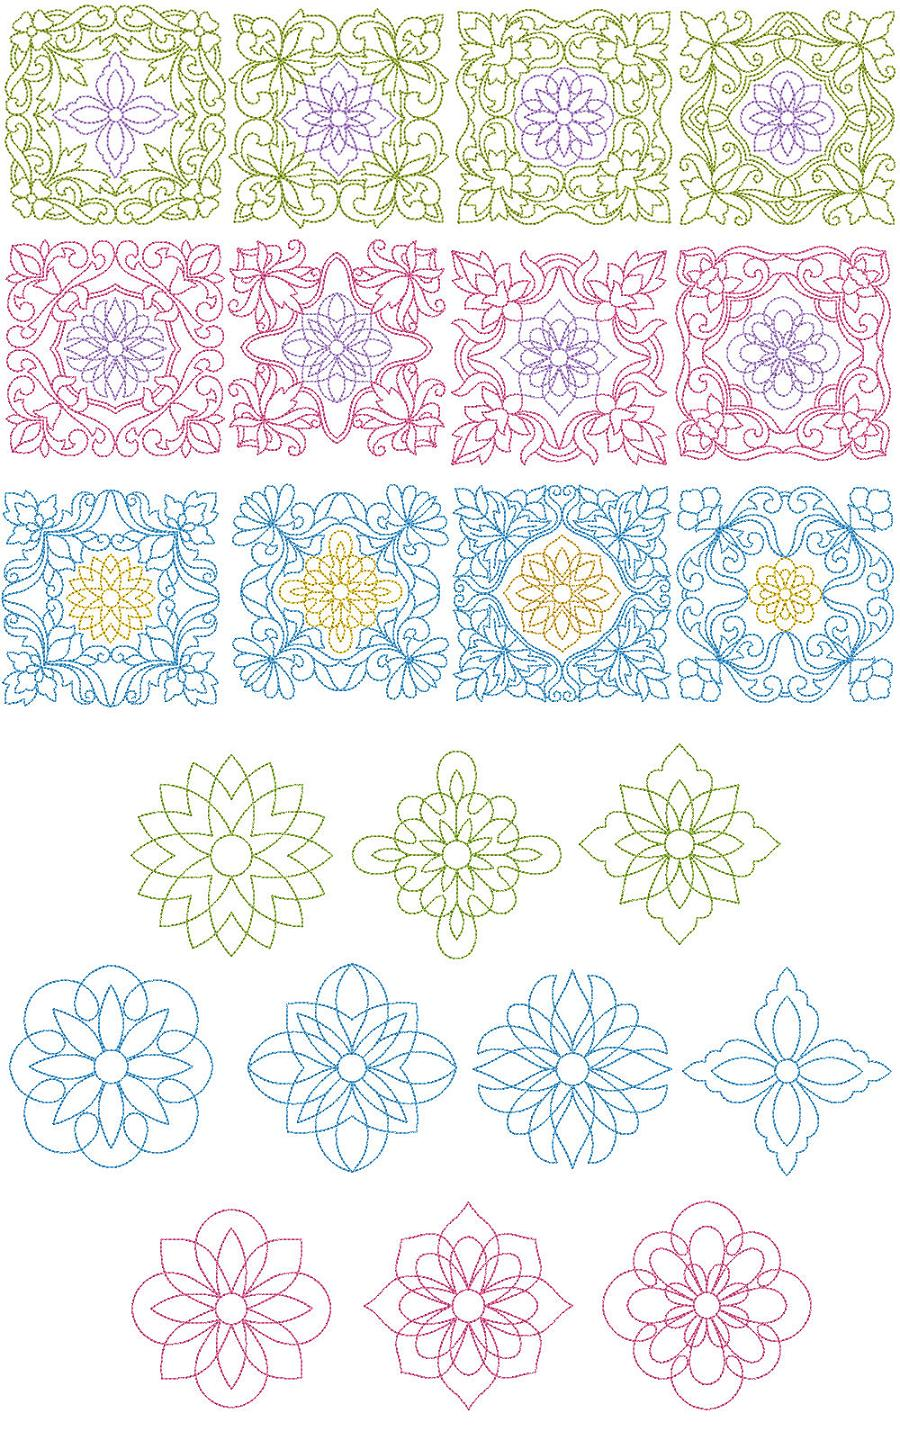 English quilt blocks machine embroidery designs